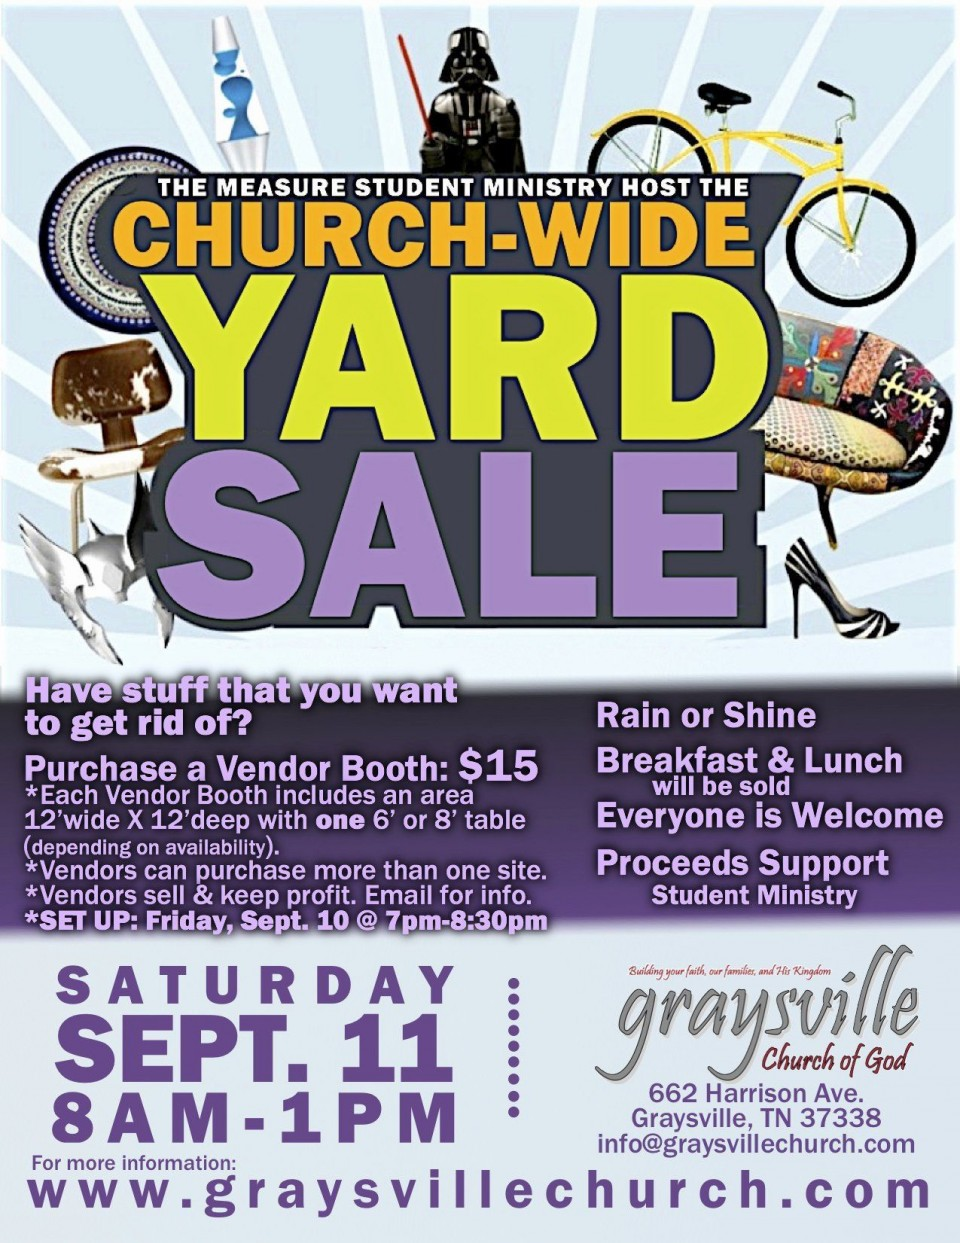 001 Fascinating Yard Sale Flyer Template Design  Free Garage Microsoft Word960